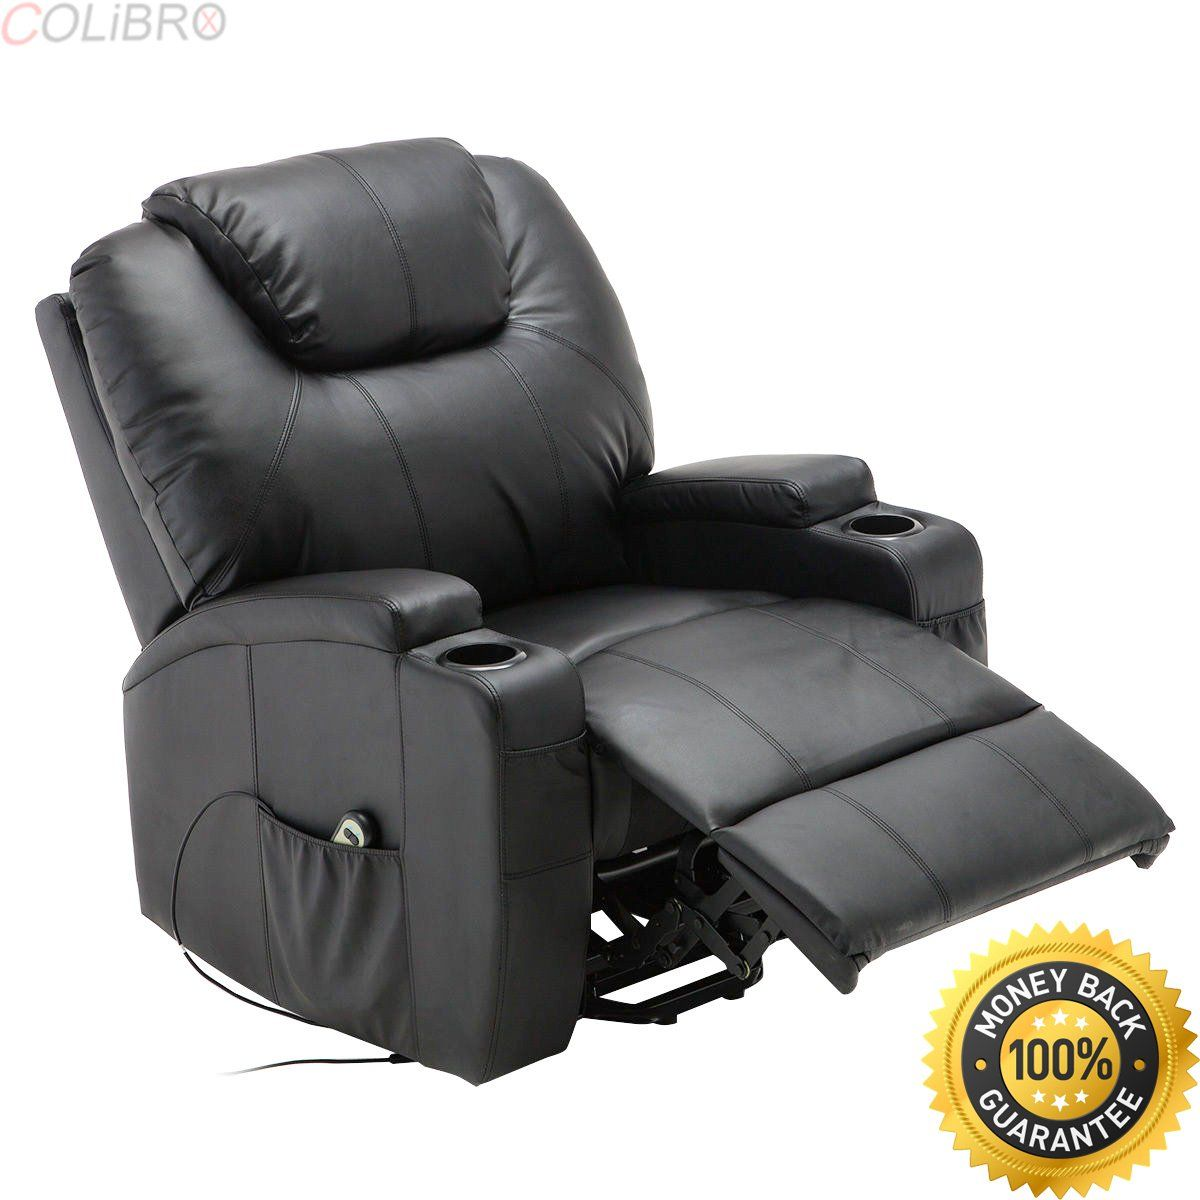 COLIBROXElectric Lift Power Recliner Chair Heated Massage